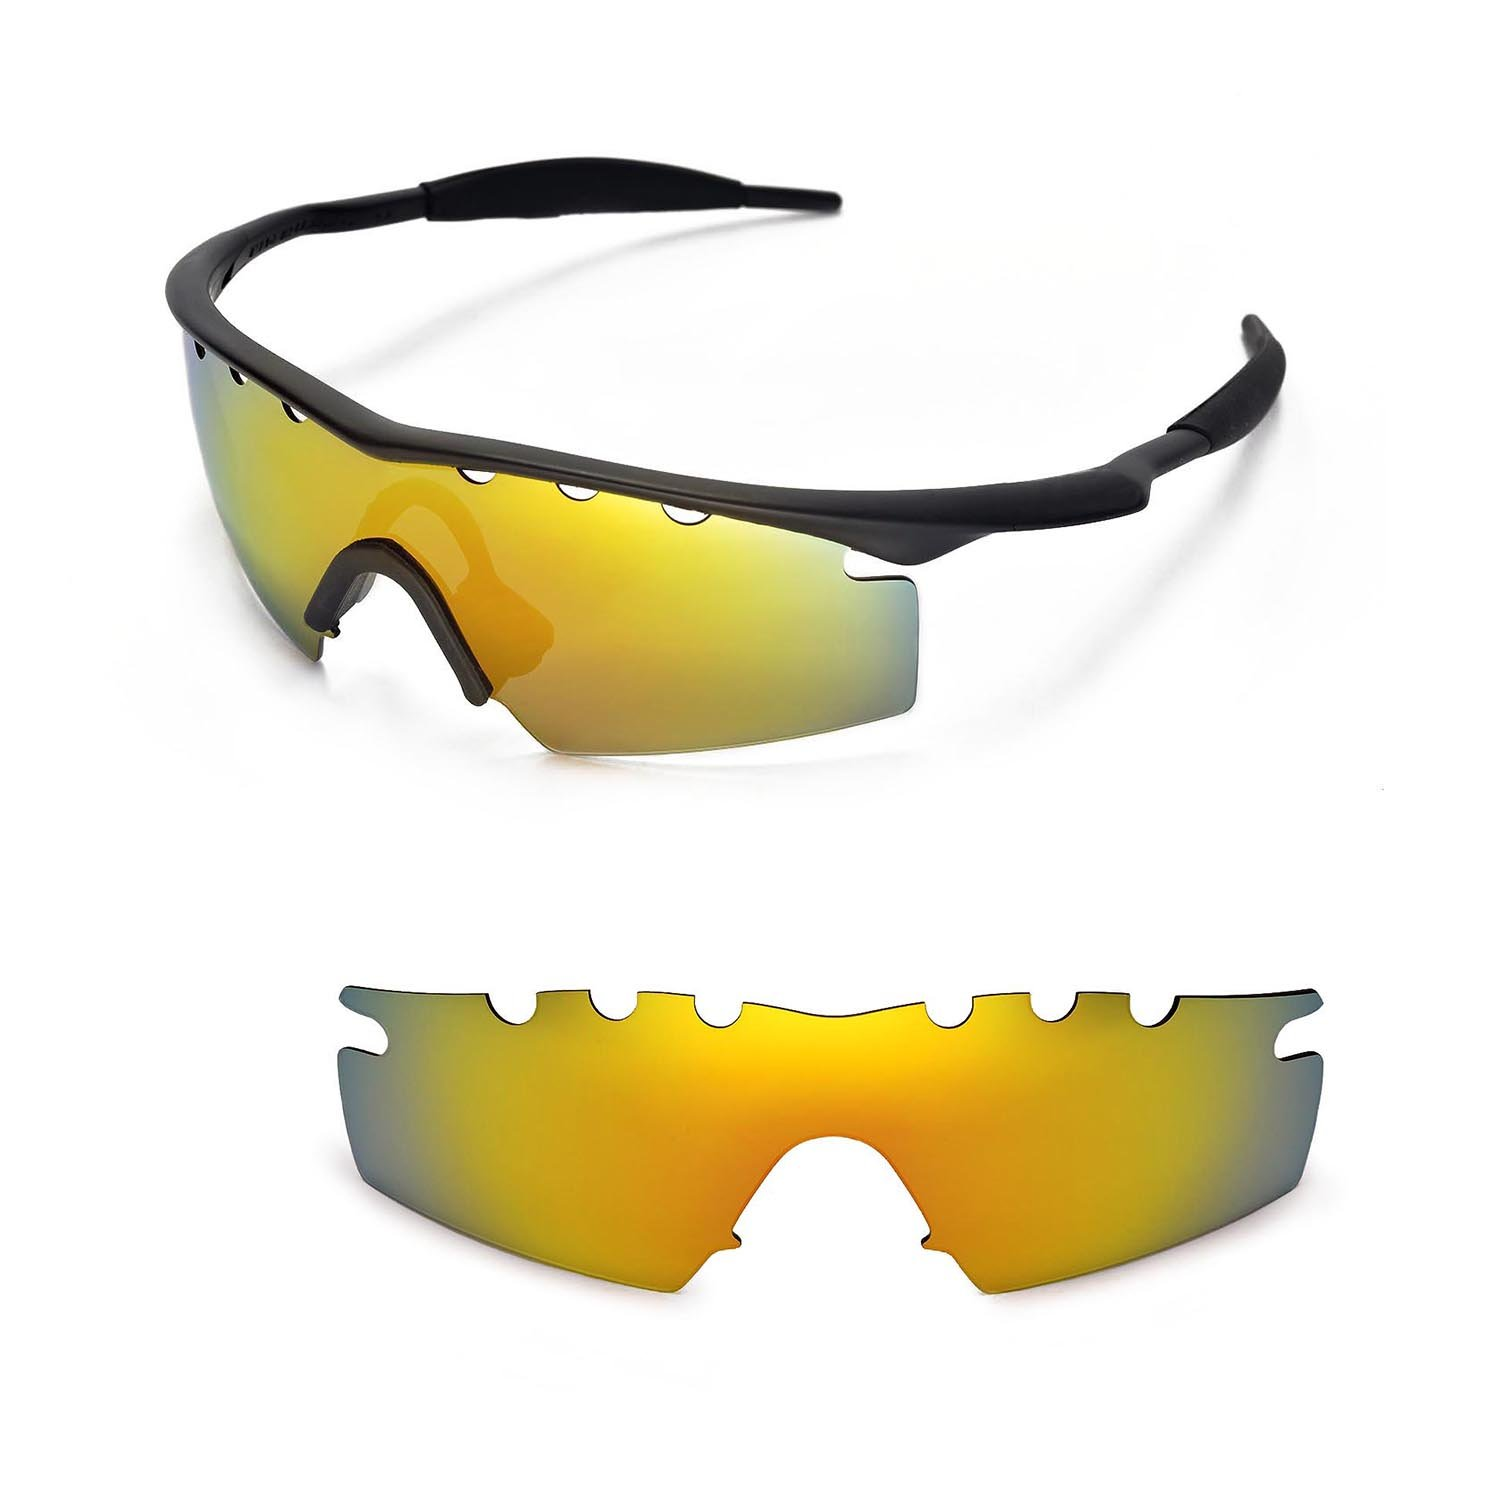 b6ad556e1a6 Amazon.com   Walleva Vented Replacement Lenses for Oakley M Frame Strike  Sunglasses - Multiple Options Available (24K Gold - Polarized)   Sports    Outdoors